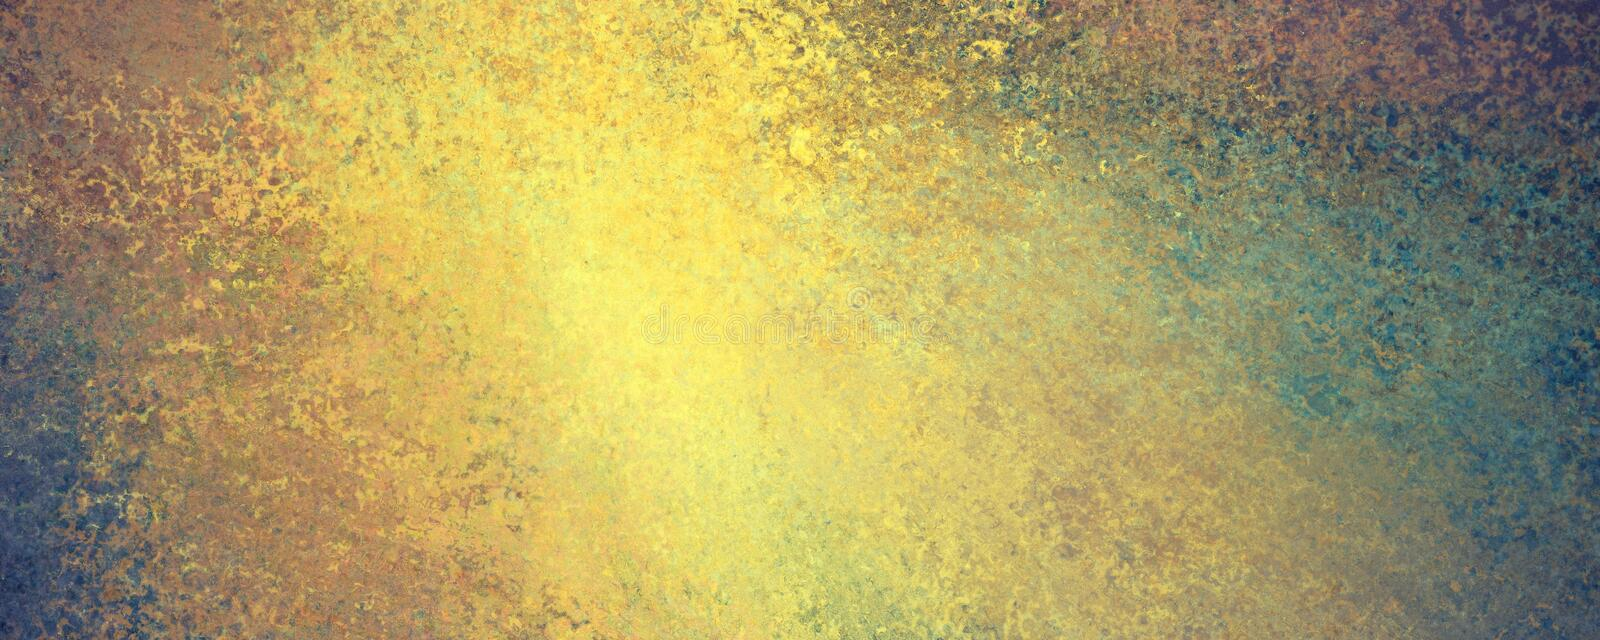 Abstract gold grunge on blue green background with lots of texture and distressed vintage grungy surface royalty free illustration